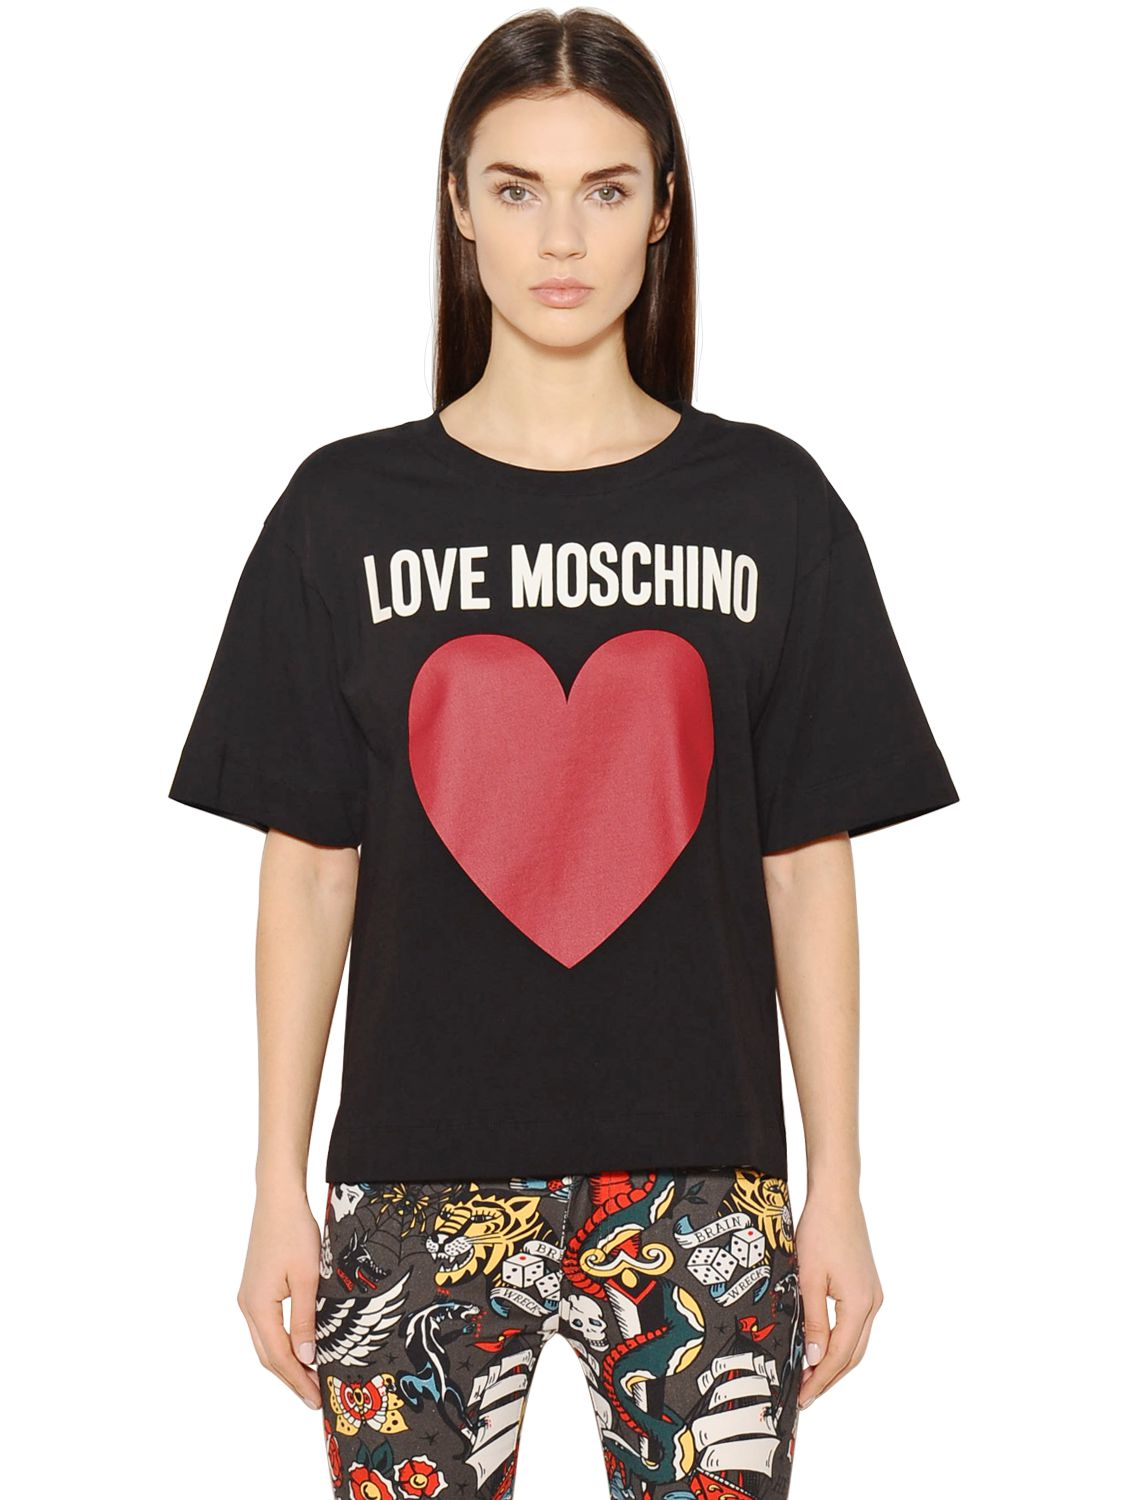 love moschino heart printed cotton jersey t shirt in black. Black Bedroom Furniture Sets. Home Design Ideas